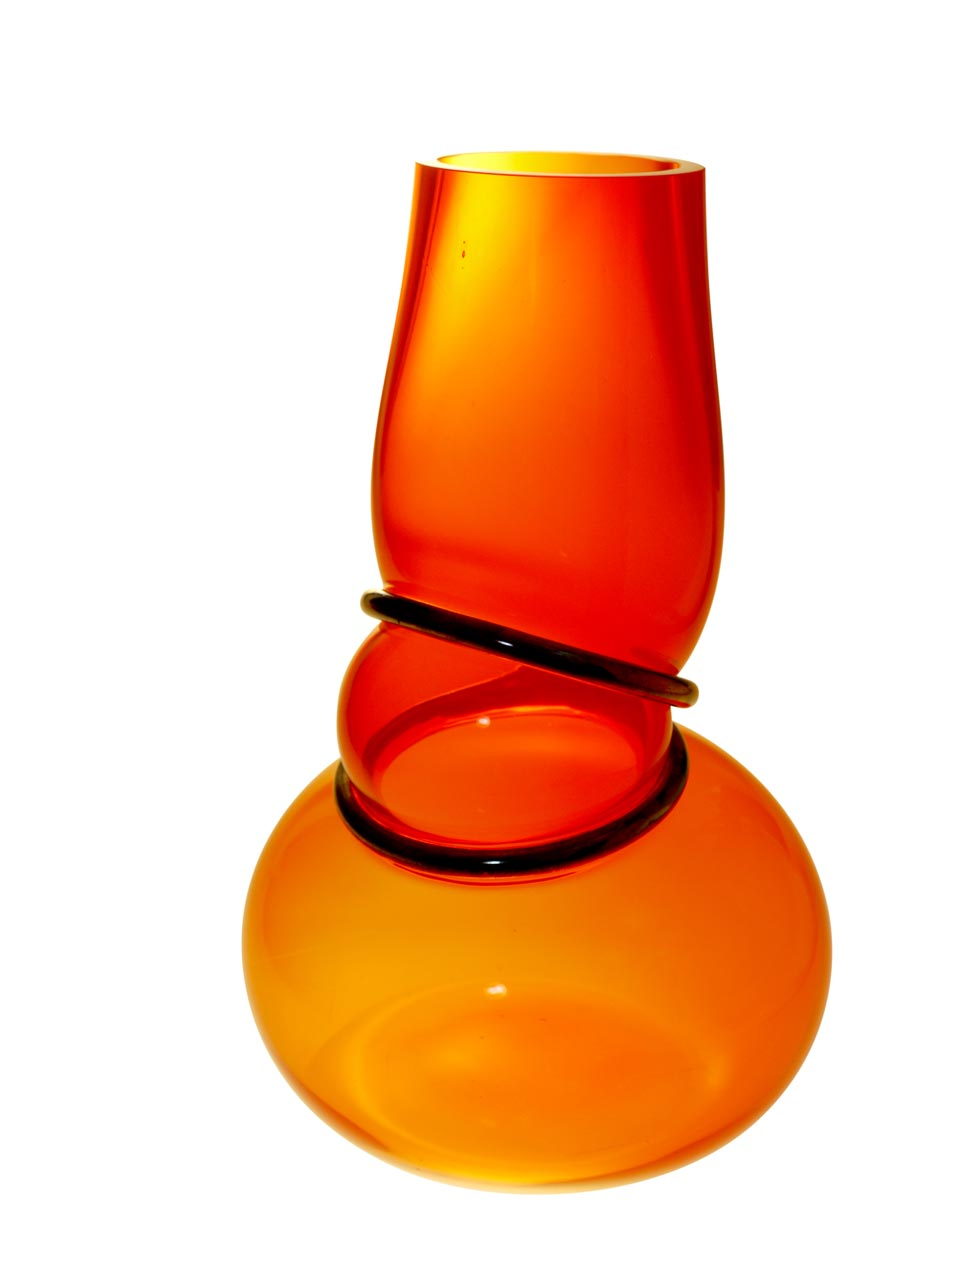 Colors Double Ring vase en verre soufflé orange. Vanessa Mitrani.